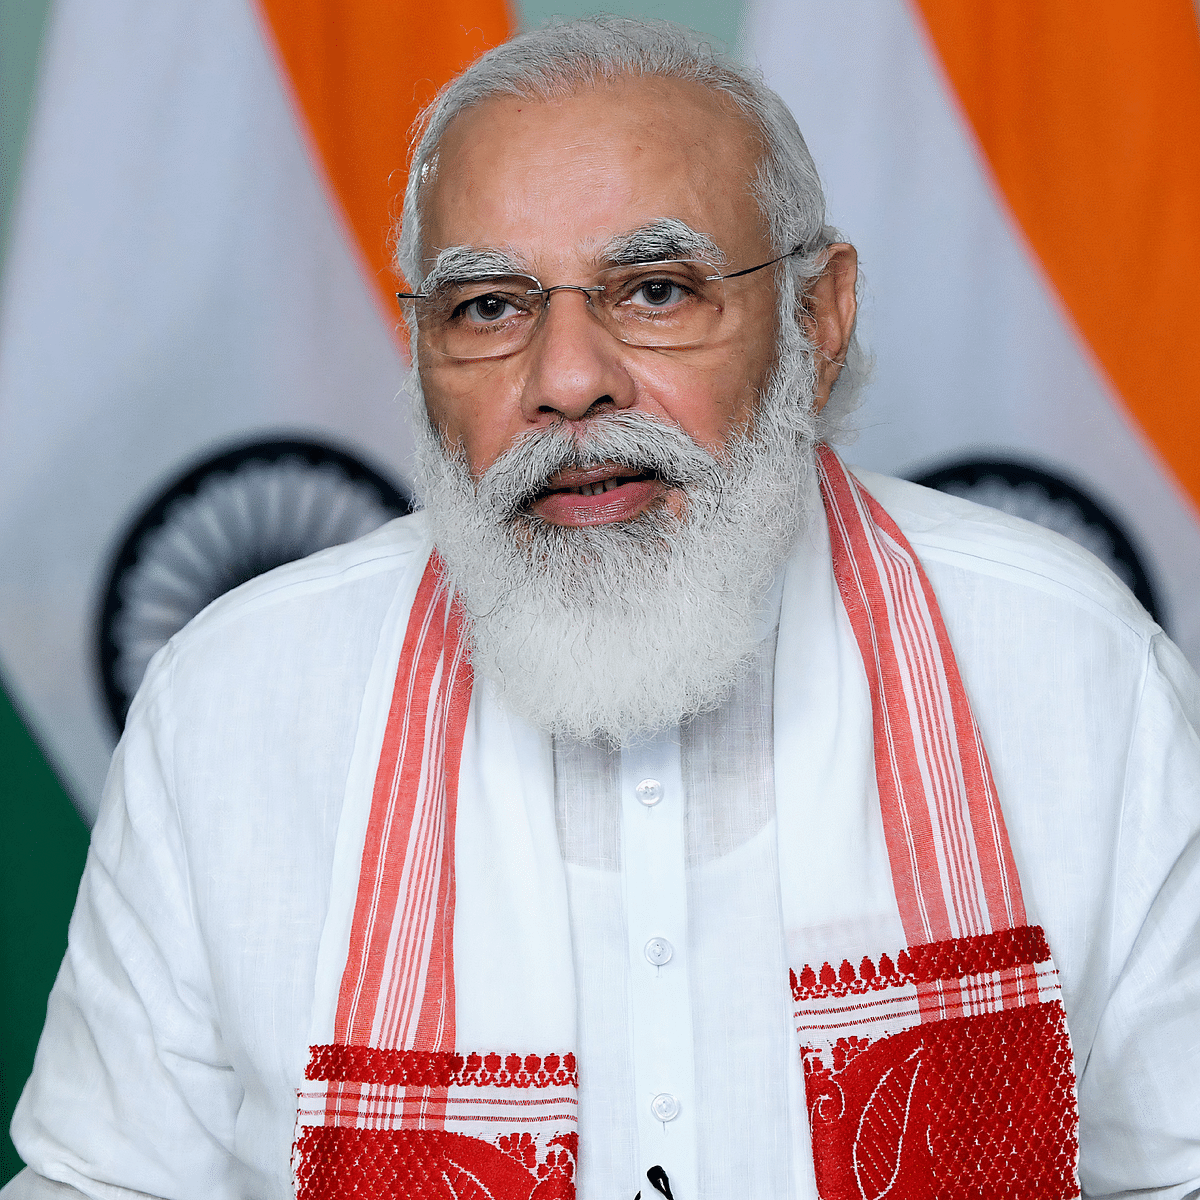 Modi's most recent look